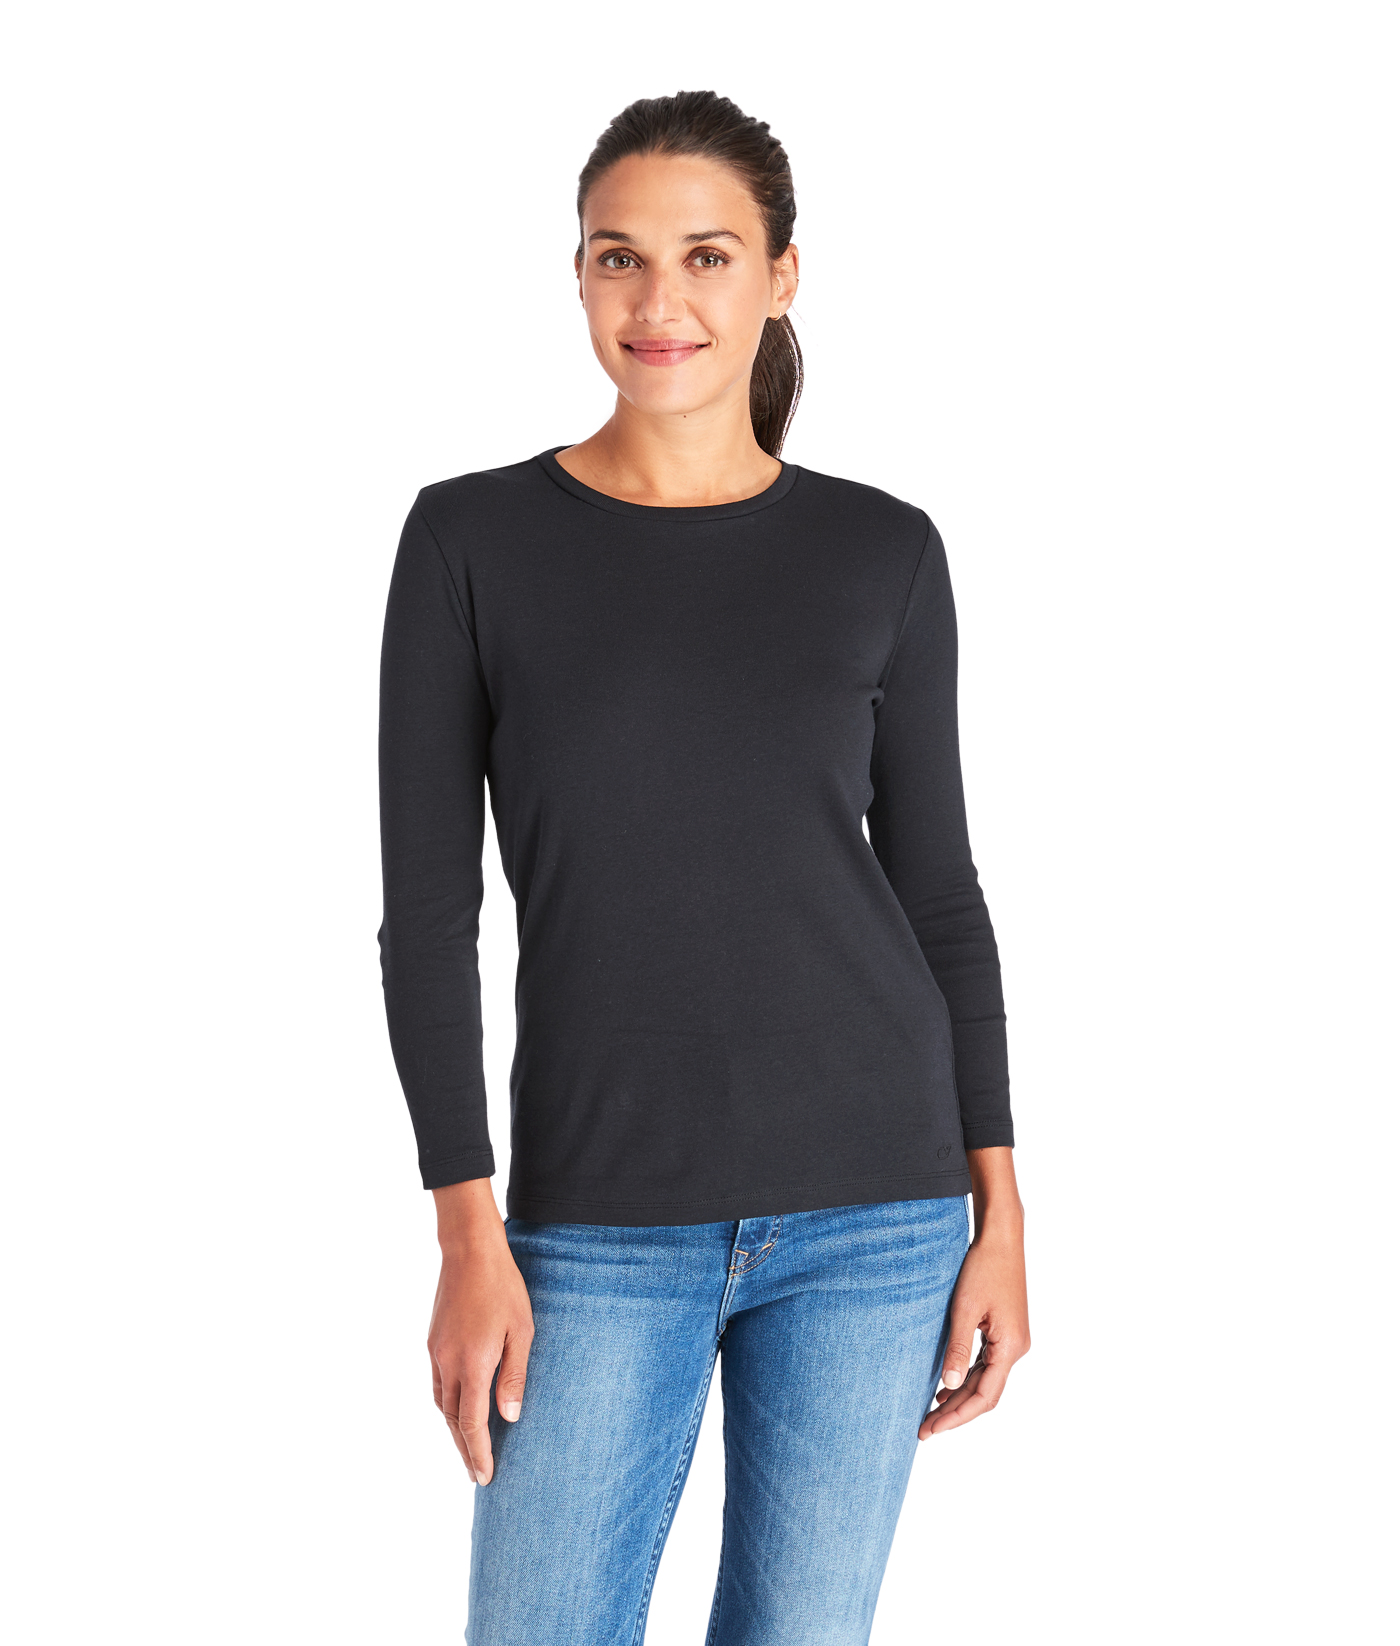 Long-Sleeve Simple Crewneck Tee